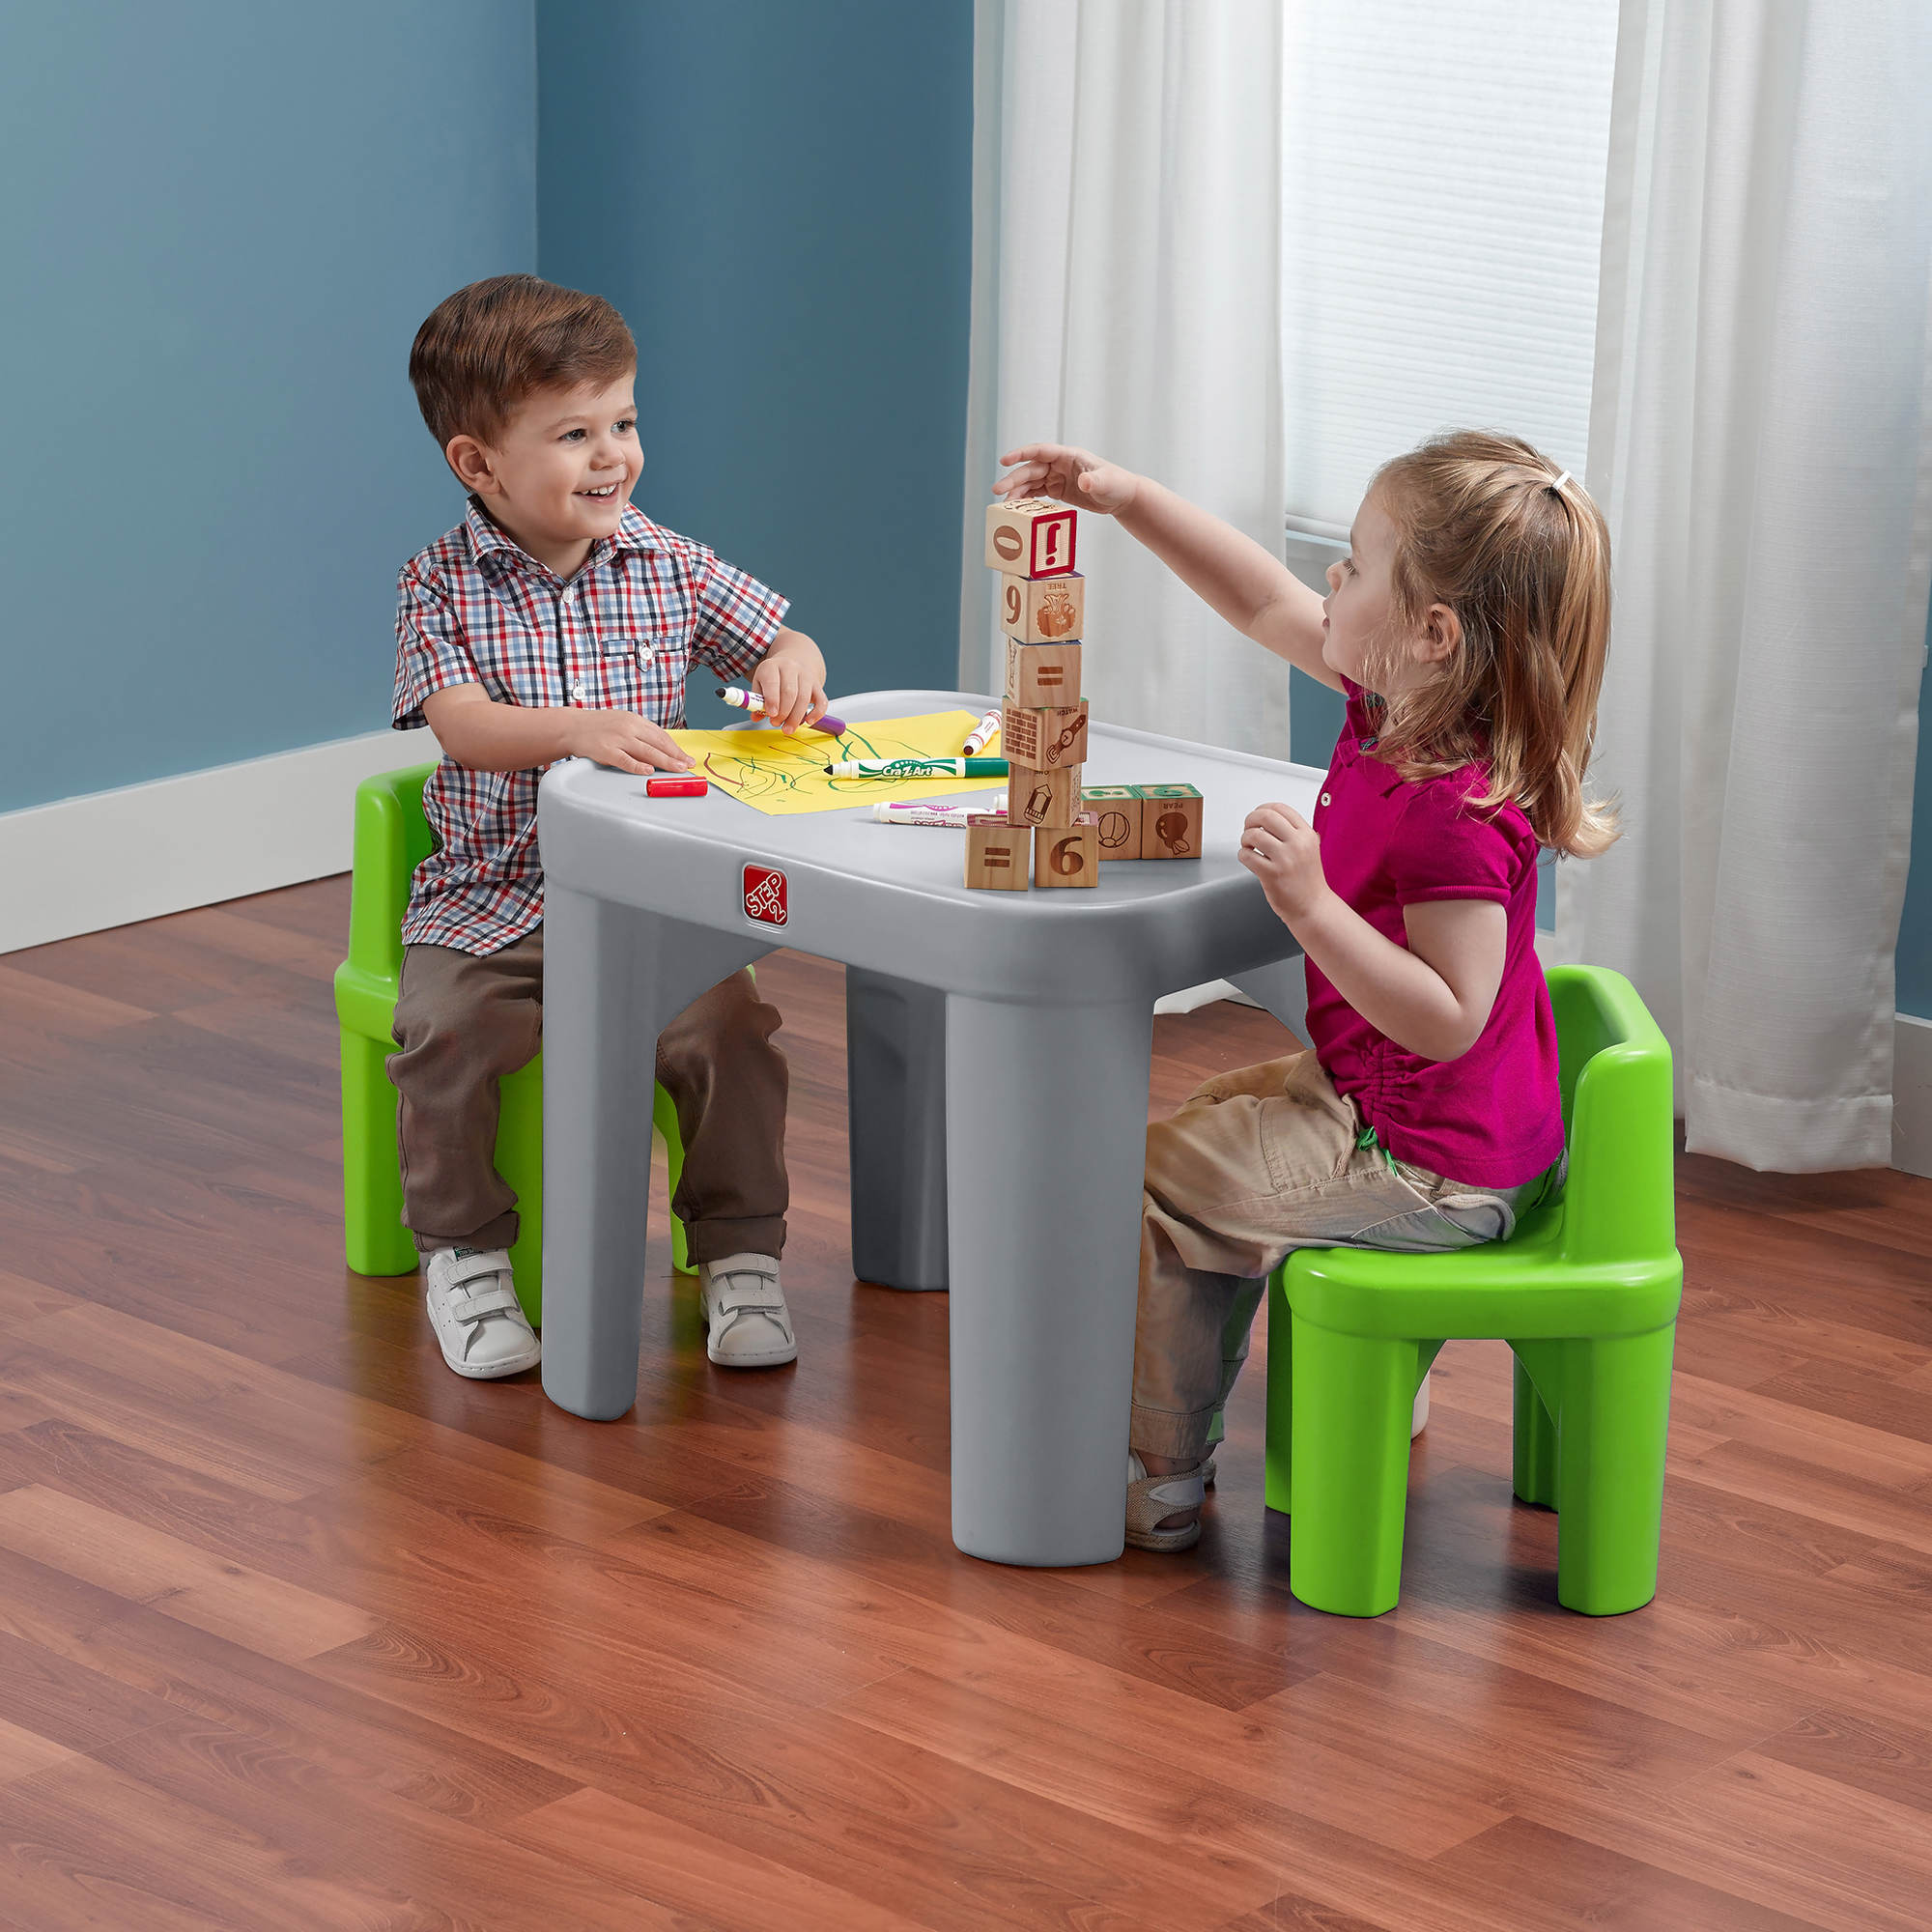 Step2 Mighty My Size Table and Chairs Set - BJs Wholesale Club